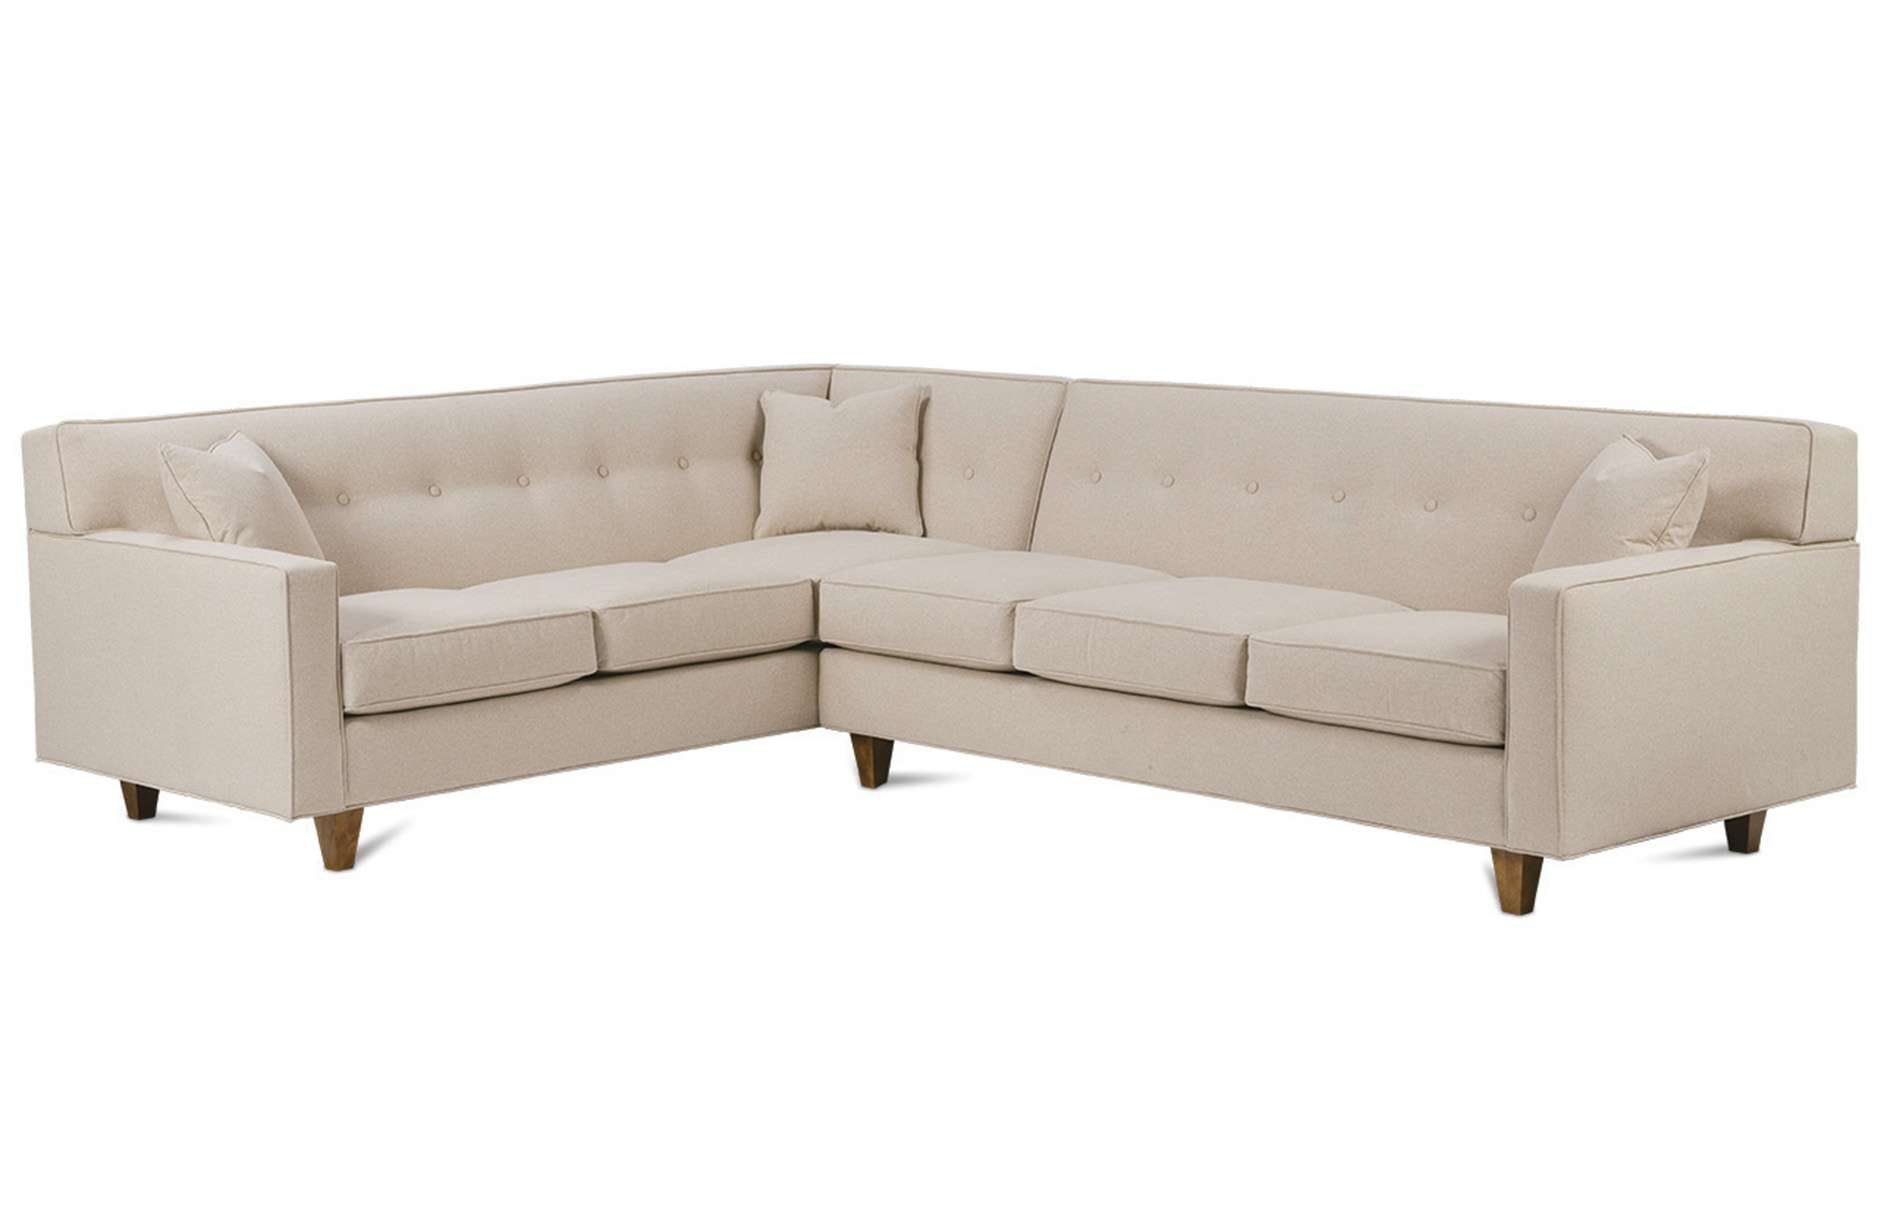 Dorset Sectional, starting at  $2199